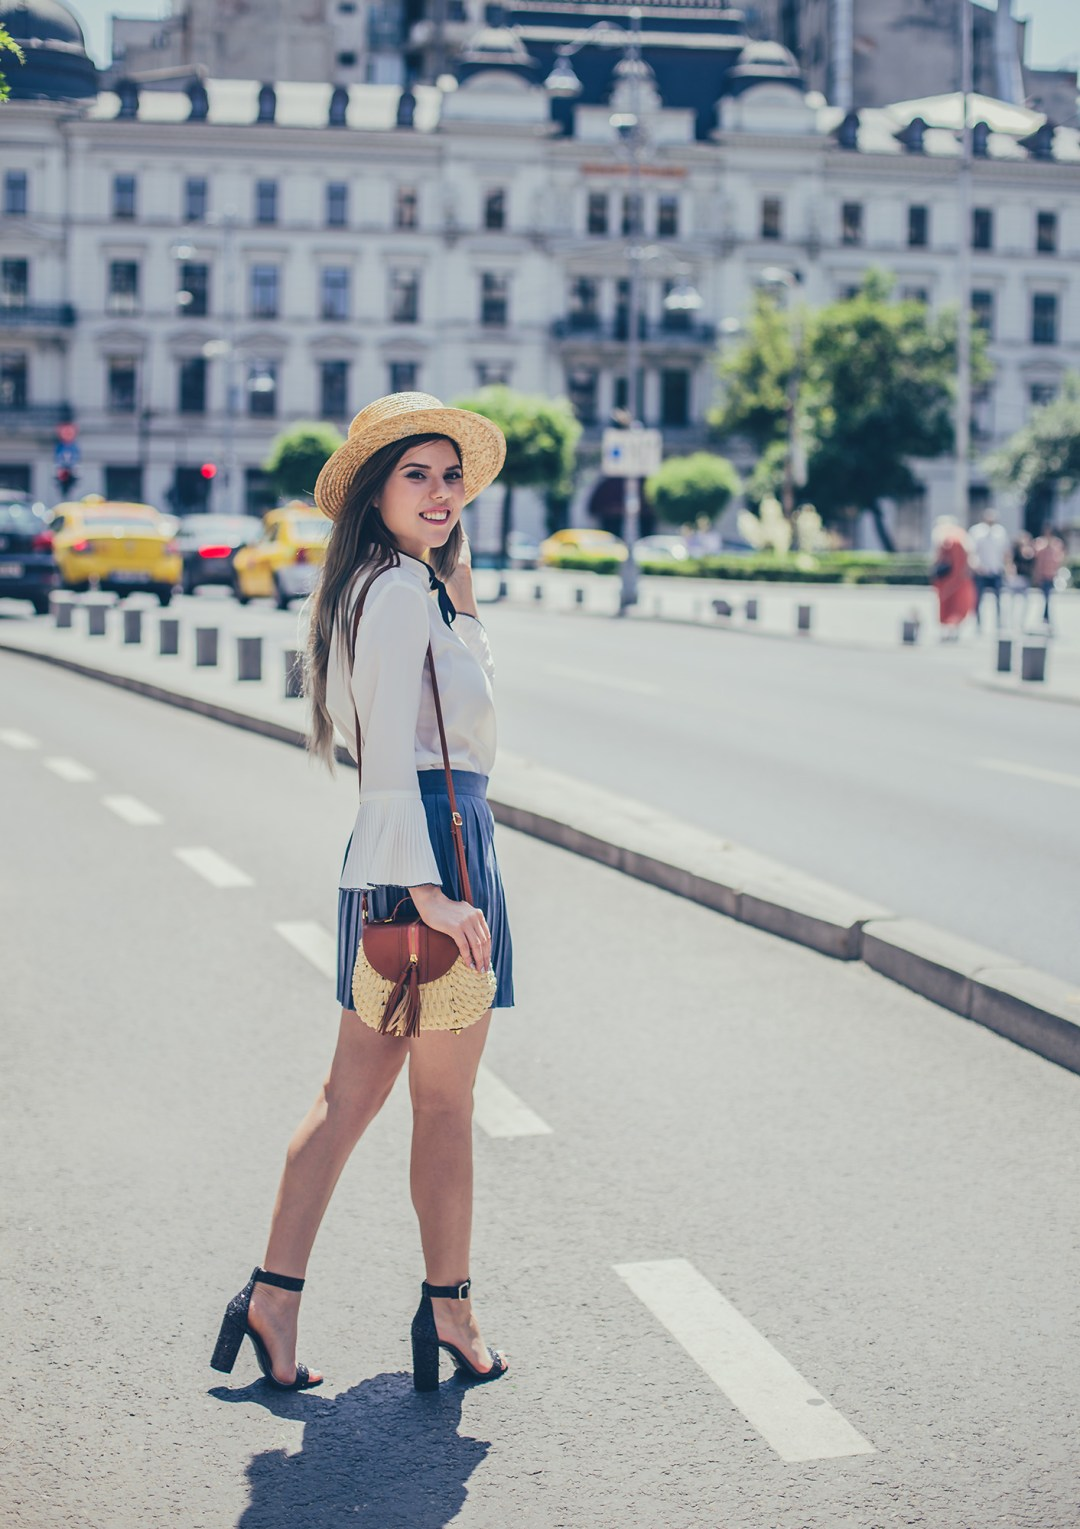 street style photo